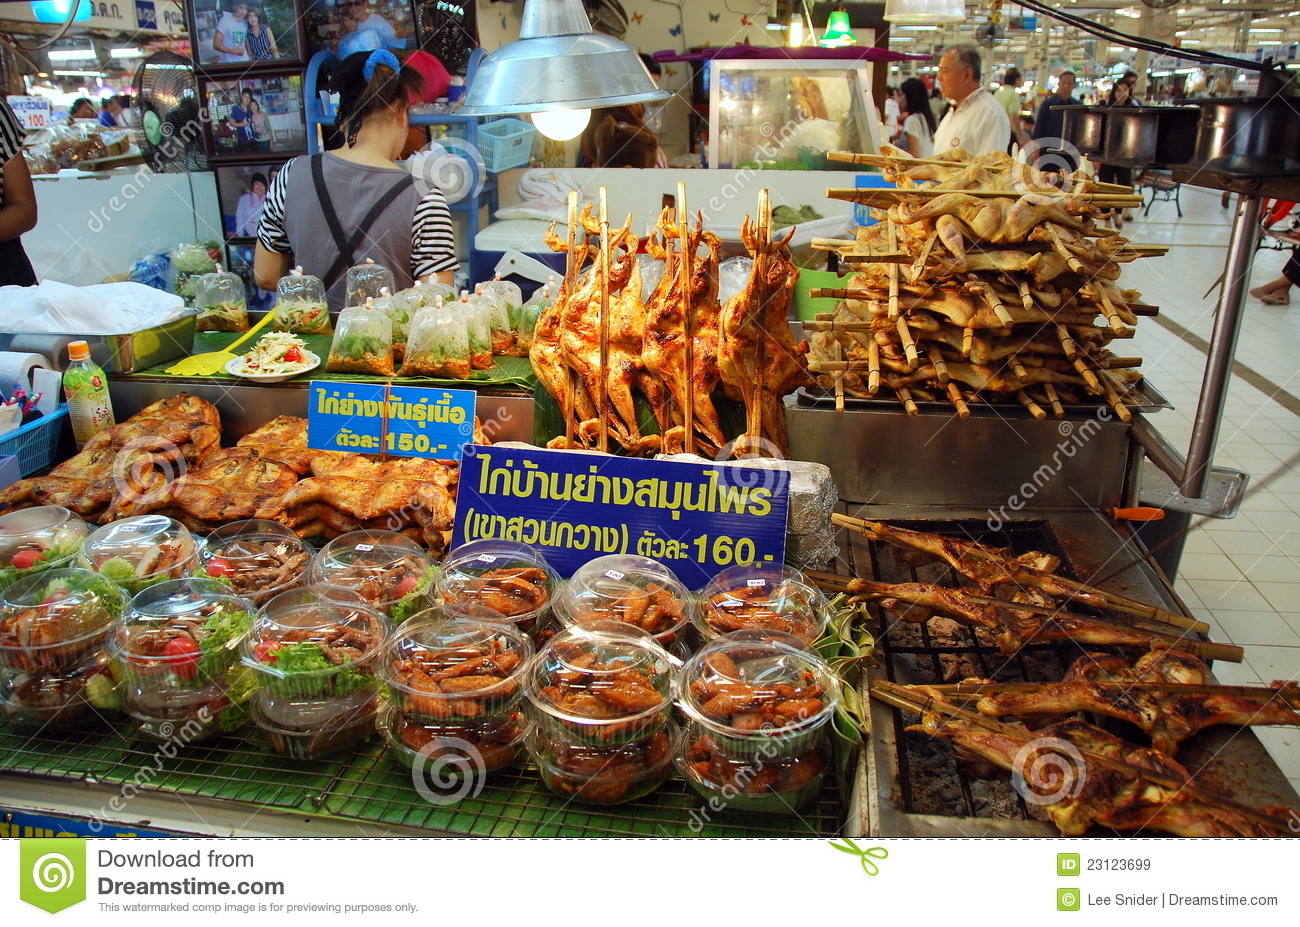 ... : Chatuchak Market Food Booth Editorial Stock Image - Image: 23123699